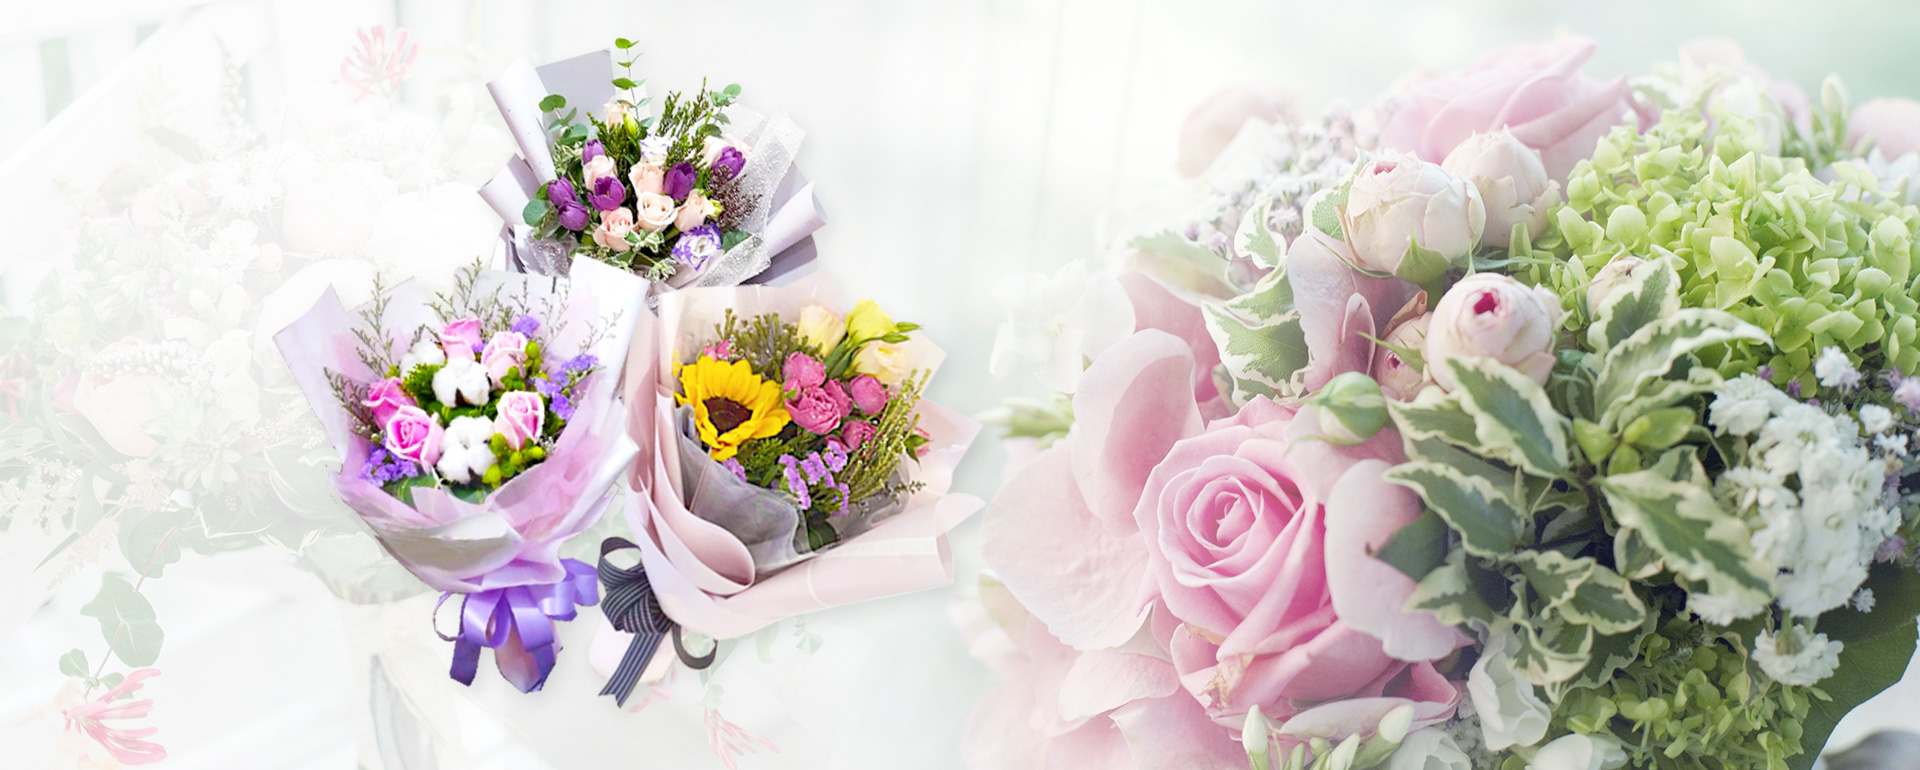 We provide lovely and exquisite flowers bouquets